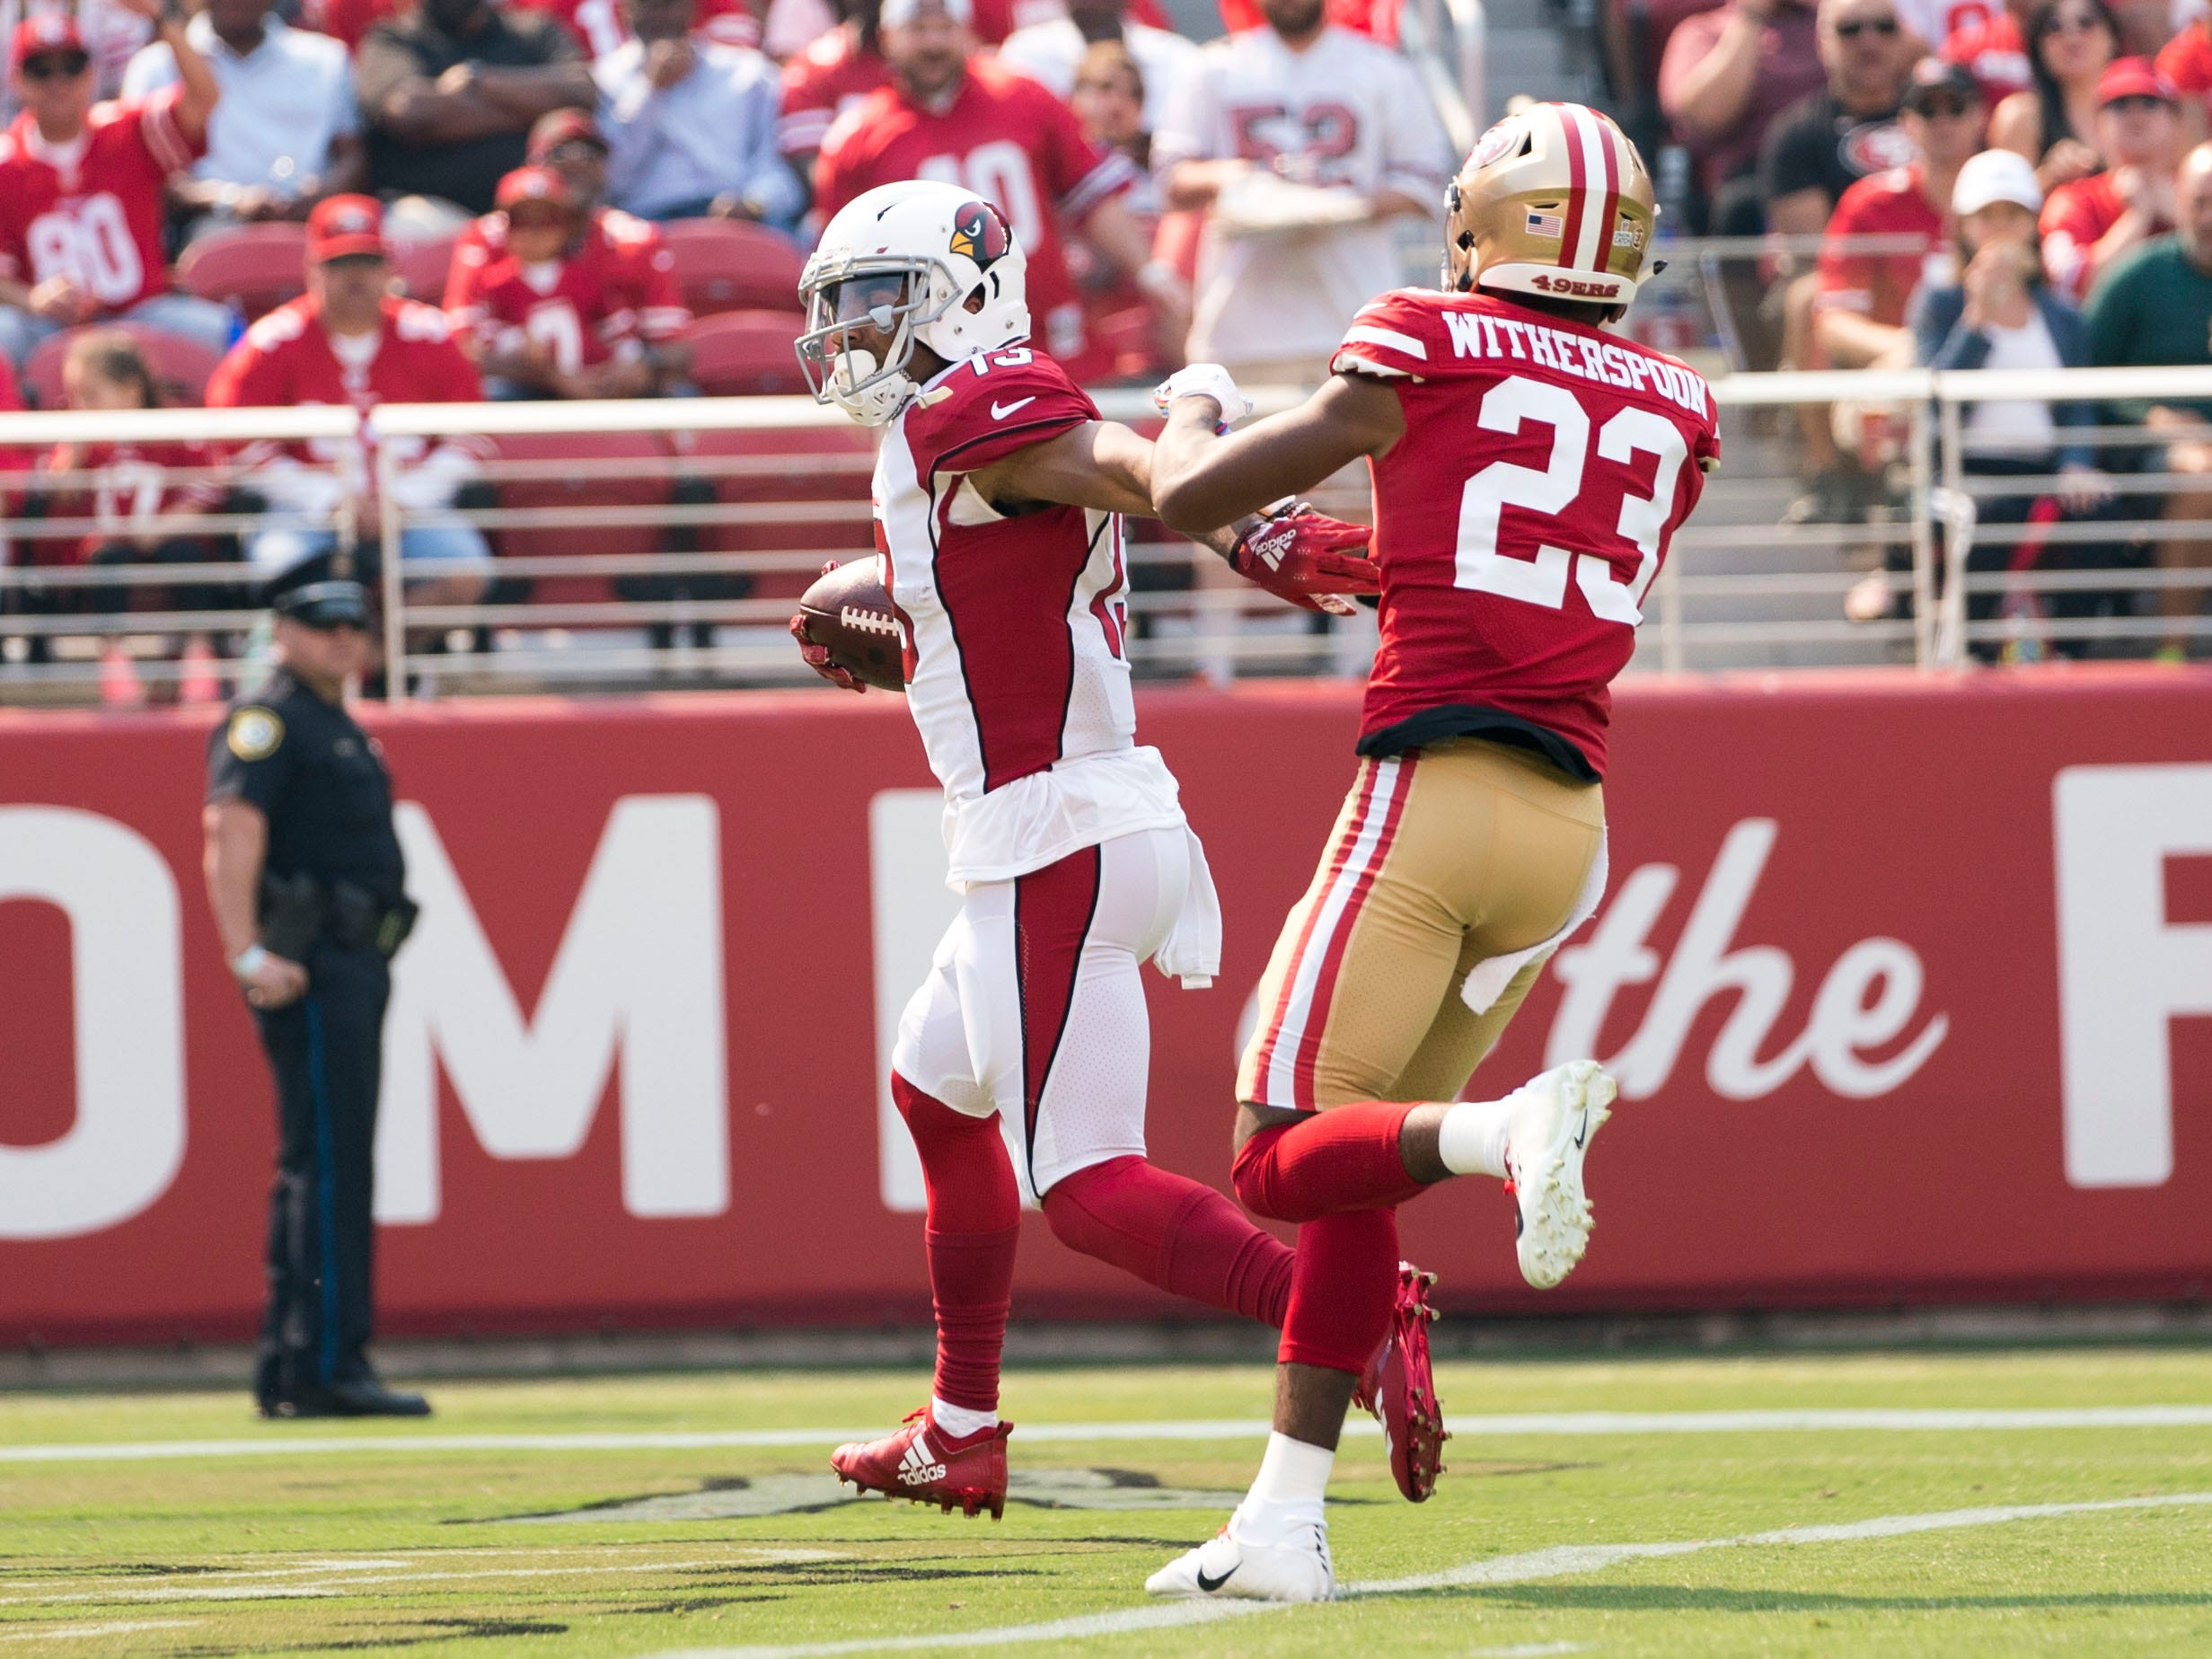 October 7, 2018; Santa Clara, CA, USA; Arizona Cardinals wide receiver Christian Kirk (13) scores a touchdown against San Francisco 49ers cornerback Ahkello Witherspoon (23) during the first quarter at Levi's Stadium.